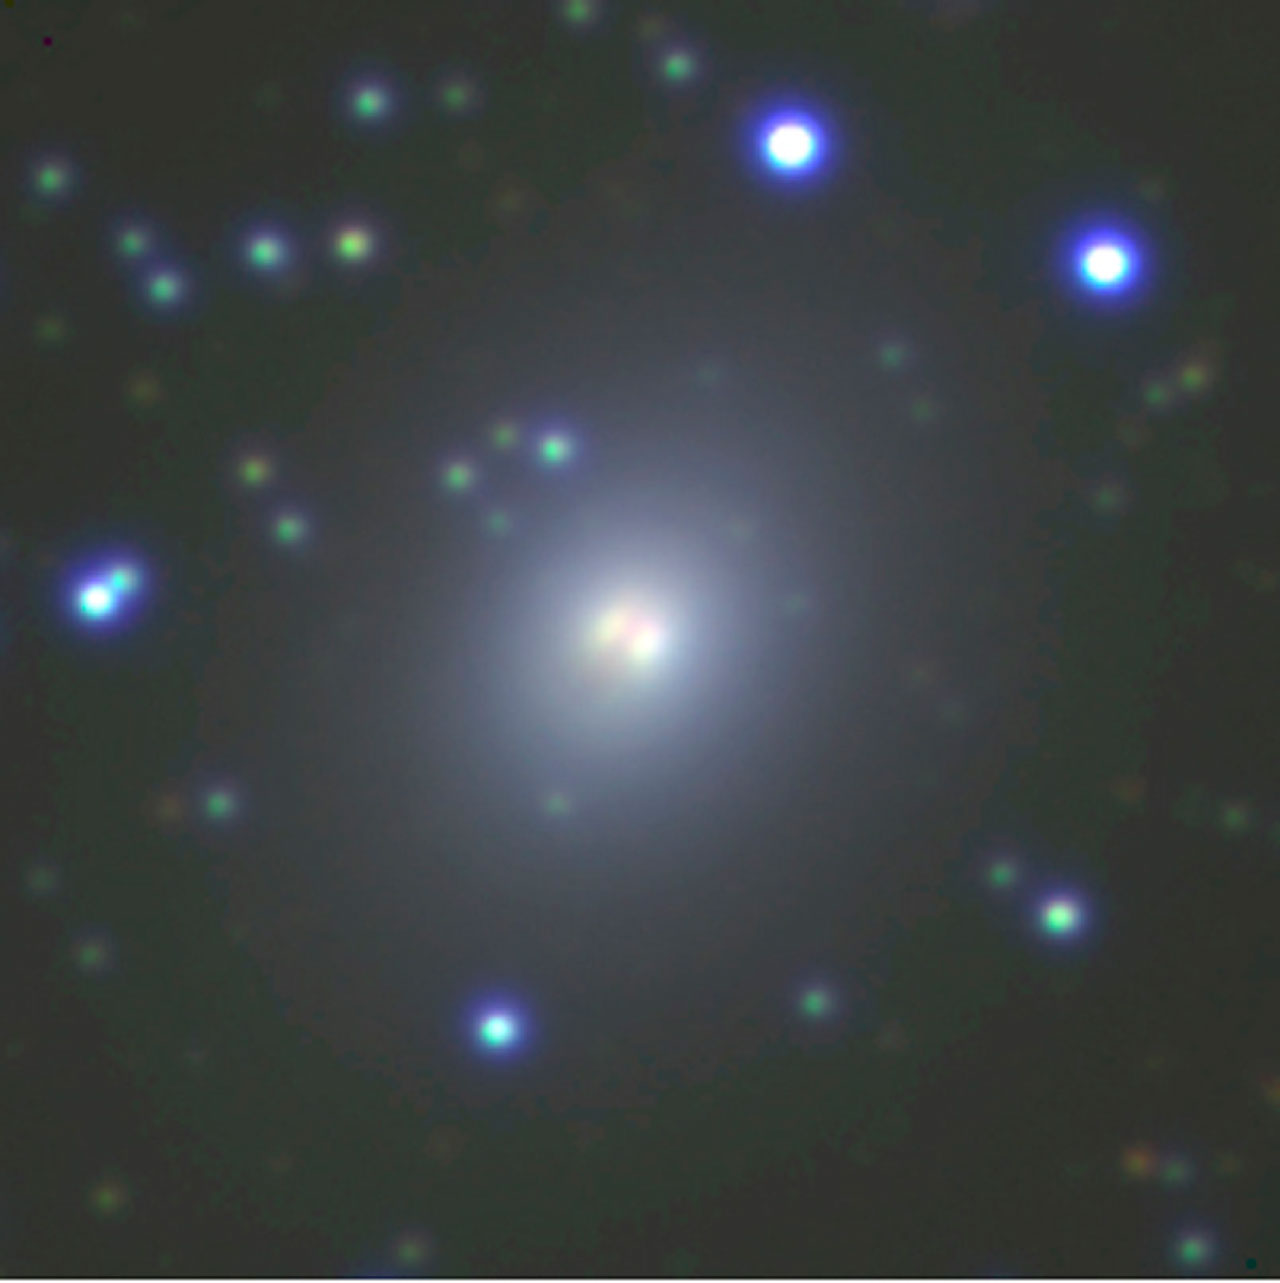 Galaxy in the Great Attractor Field